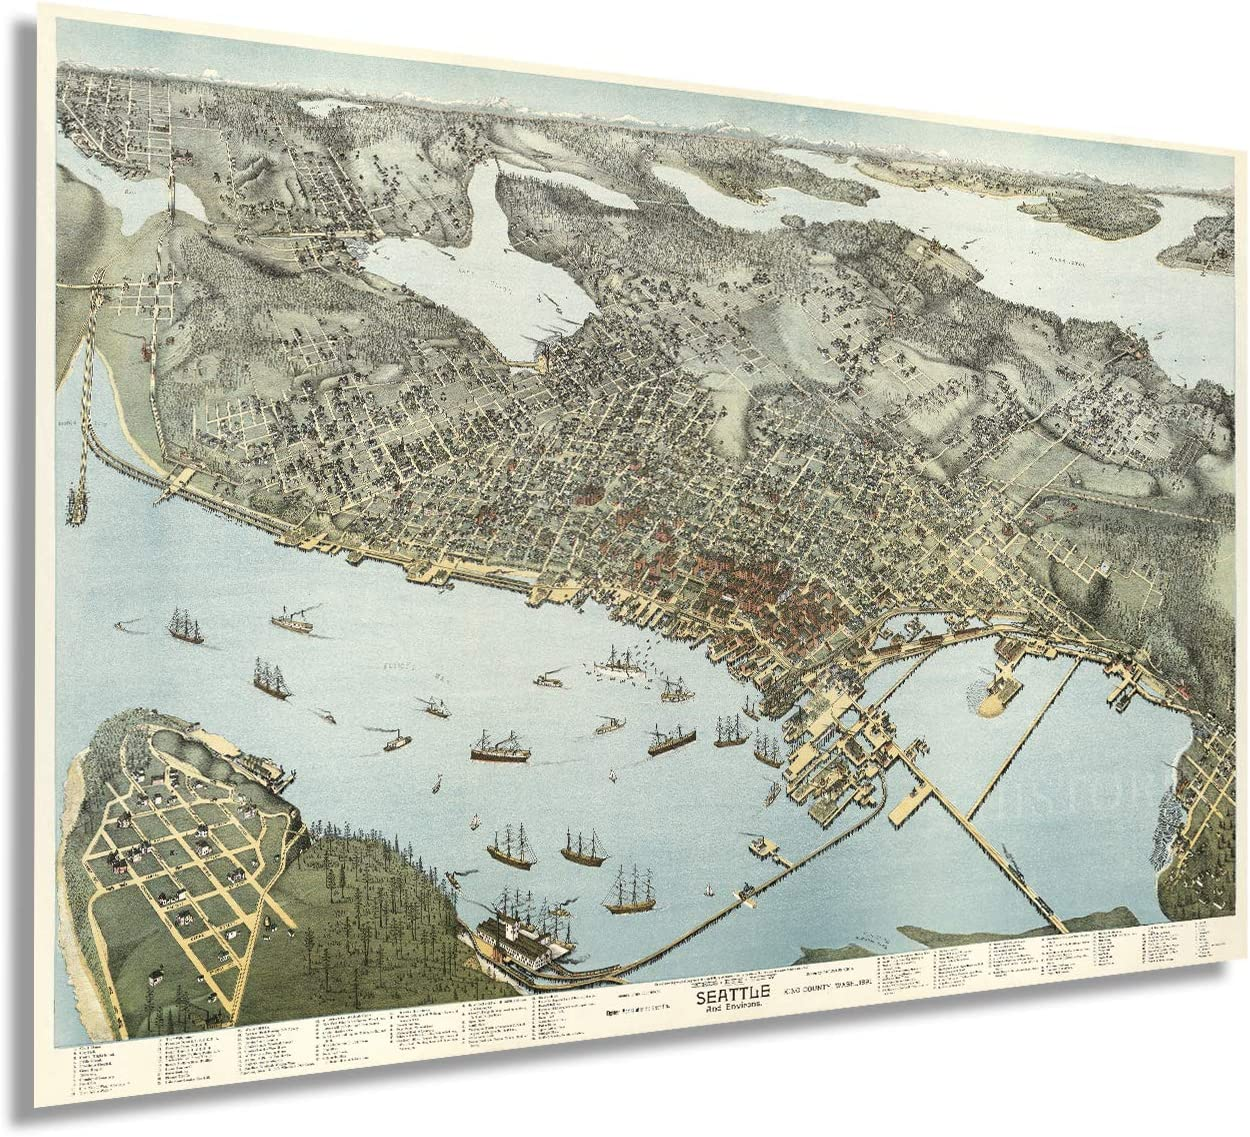 Historix Vintage 1891 Seattle Map Poster - 24 x 36 Inch Vintage Map Wall Art of Seattle King County Washington - Bird's Eye View of Seattle Map Art - Seattle Art Print - Seattle Decor (2 sizes)